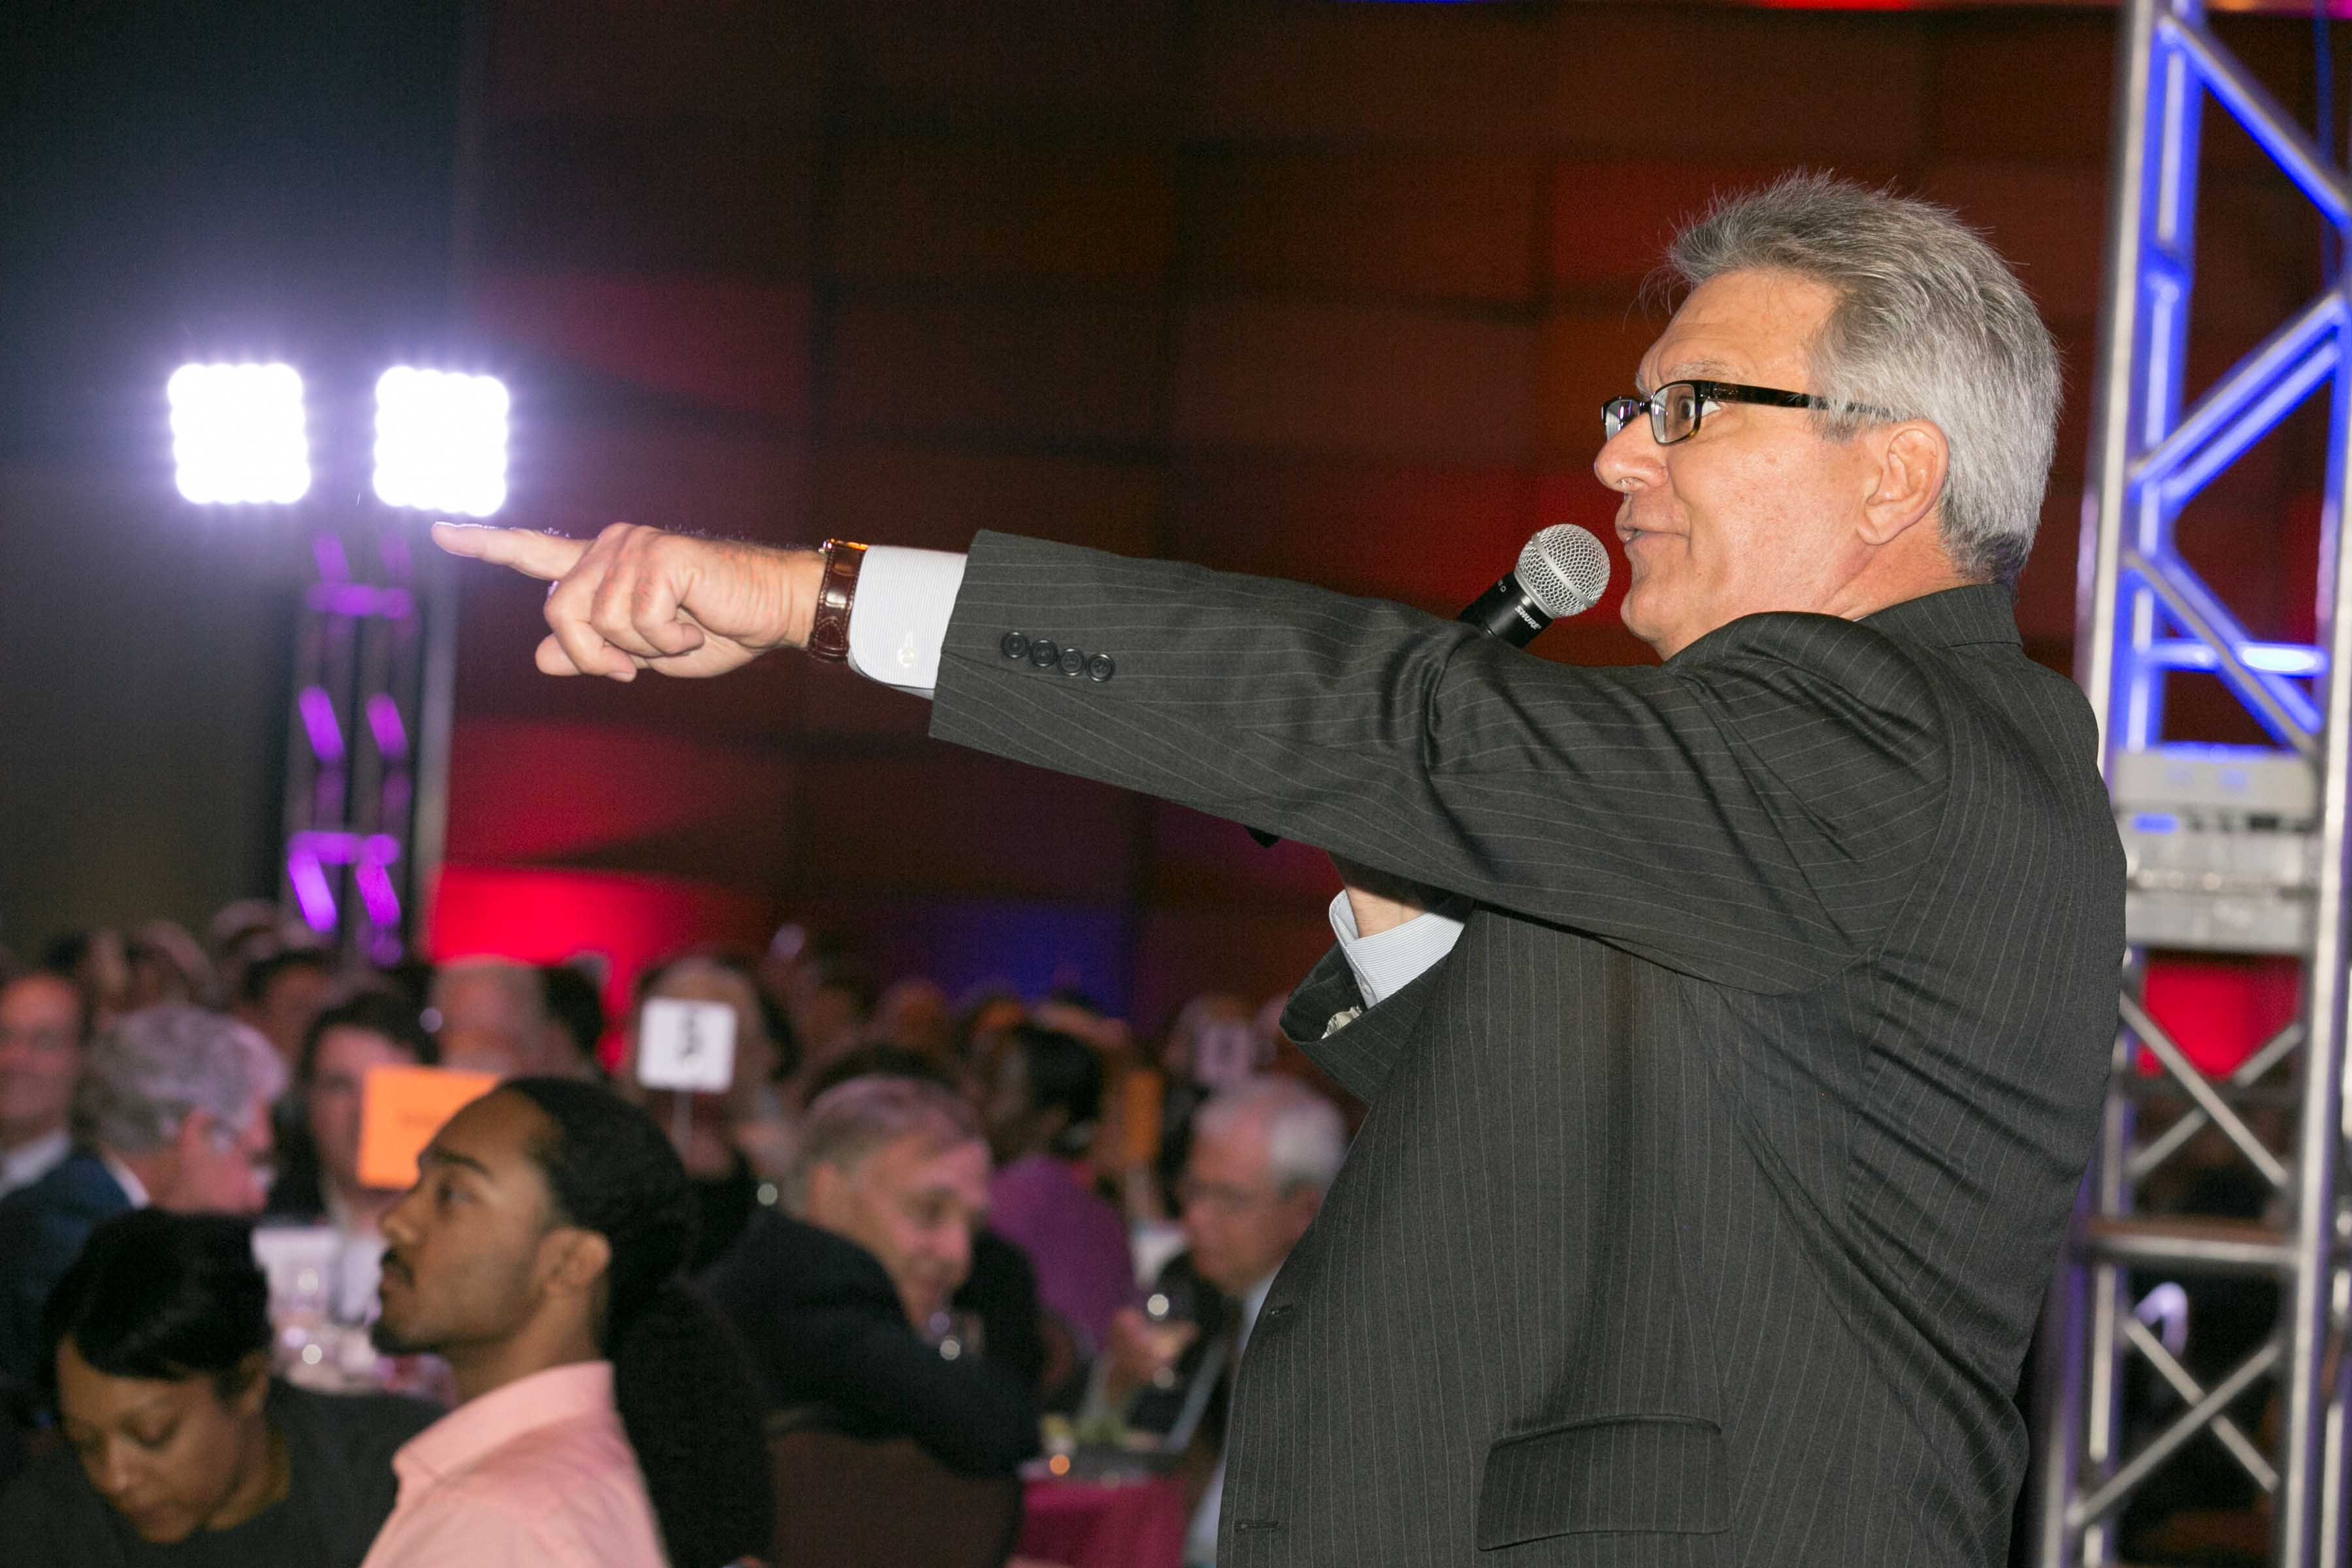 Auctioneer Points at Winner at Build Fest Boston Auction 2016